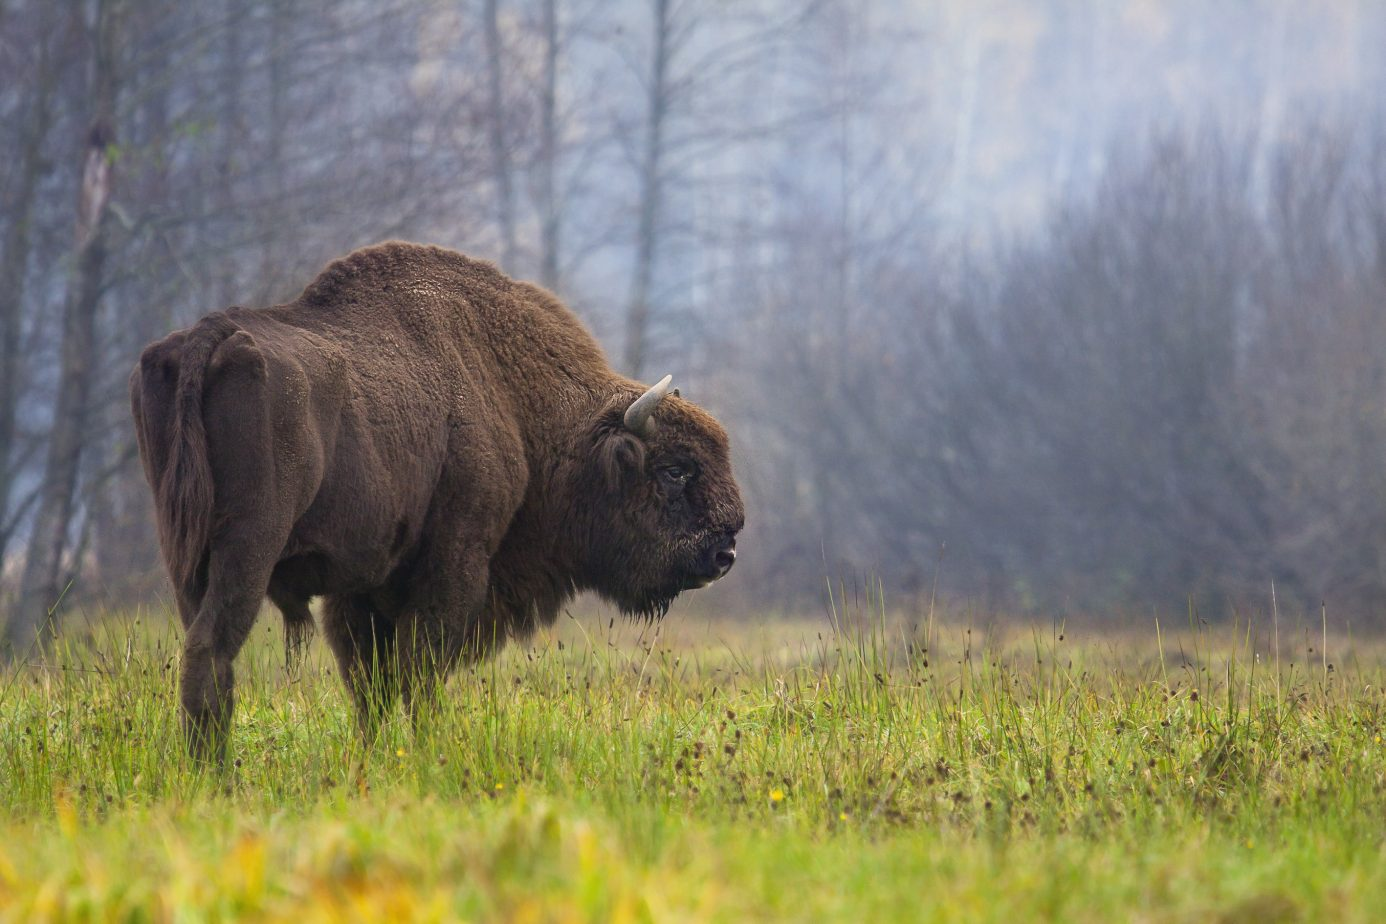 Modern European bison (or wisent - Bison bonasus) from the Białowieża Forest in Poland. Credit: Rafał Kowalczyk